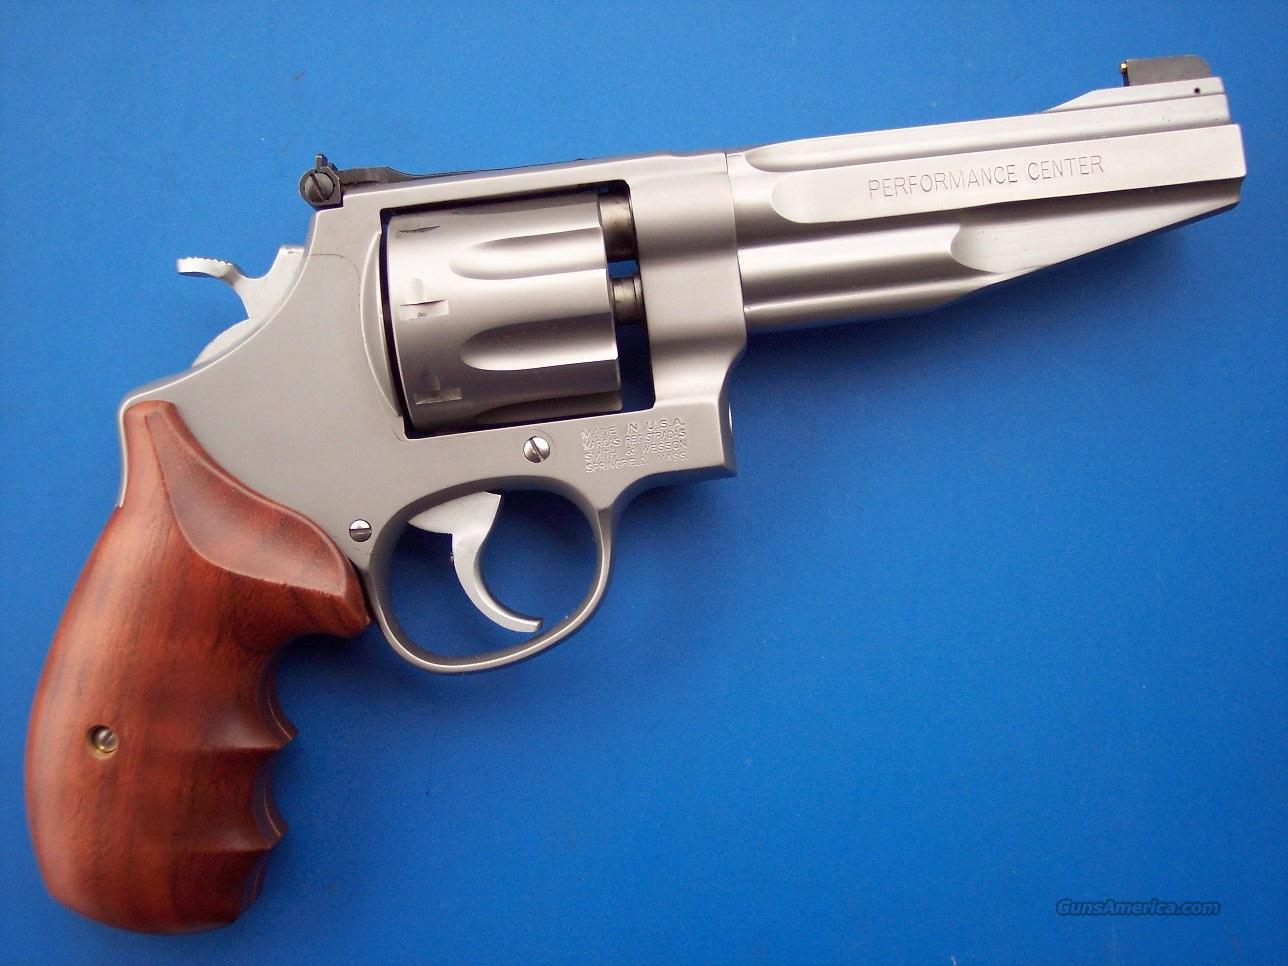 Smith & Wesson 627 Performance Center 8 shot .357   Guns > Pistols > Smith & Wesson Revolvers > Performance Center